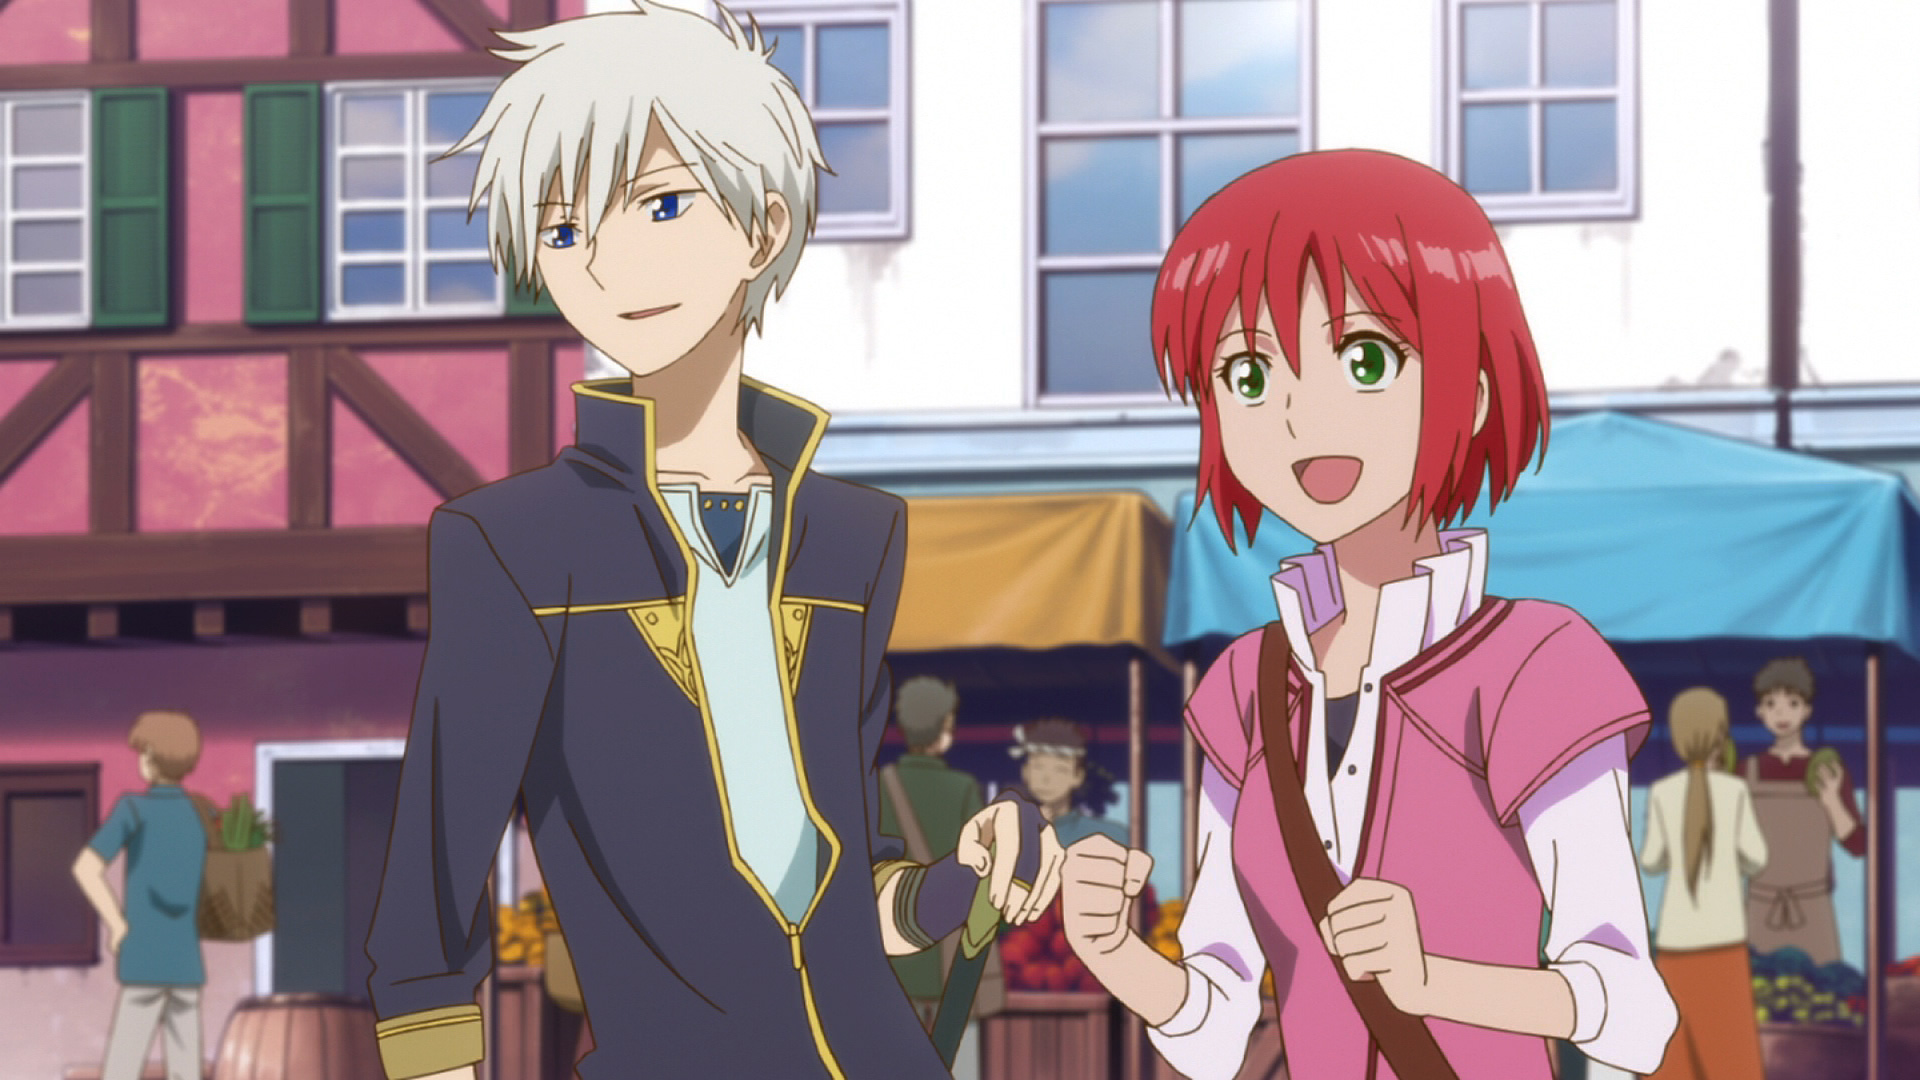 Snow White with the Red Hair - Anime Series